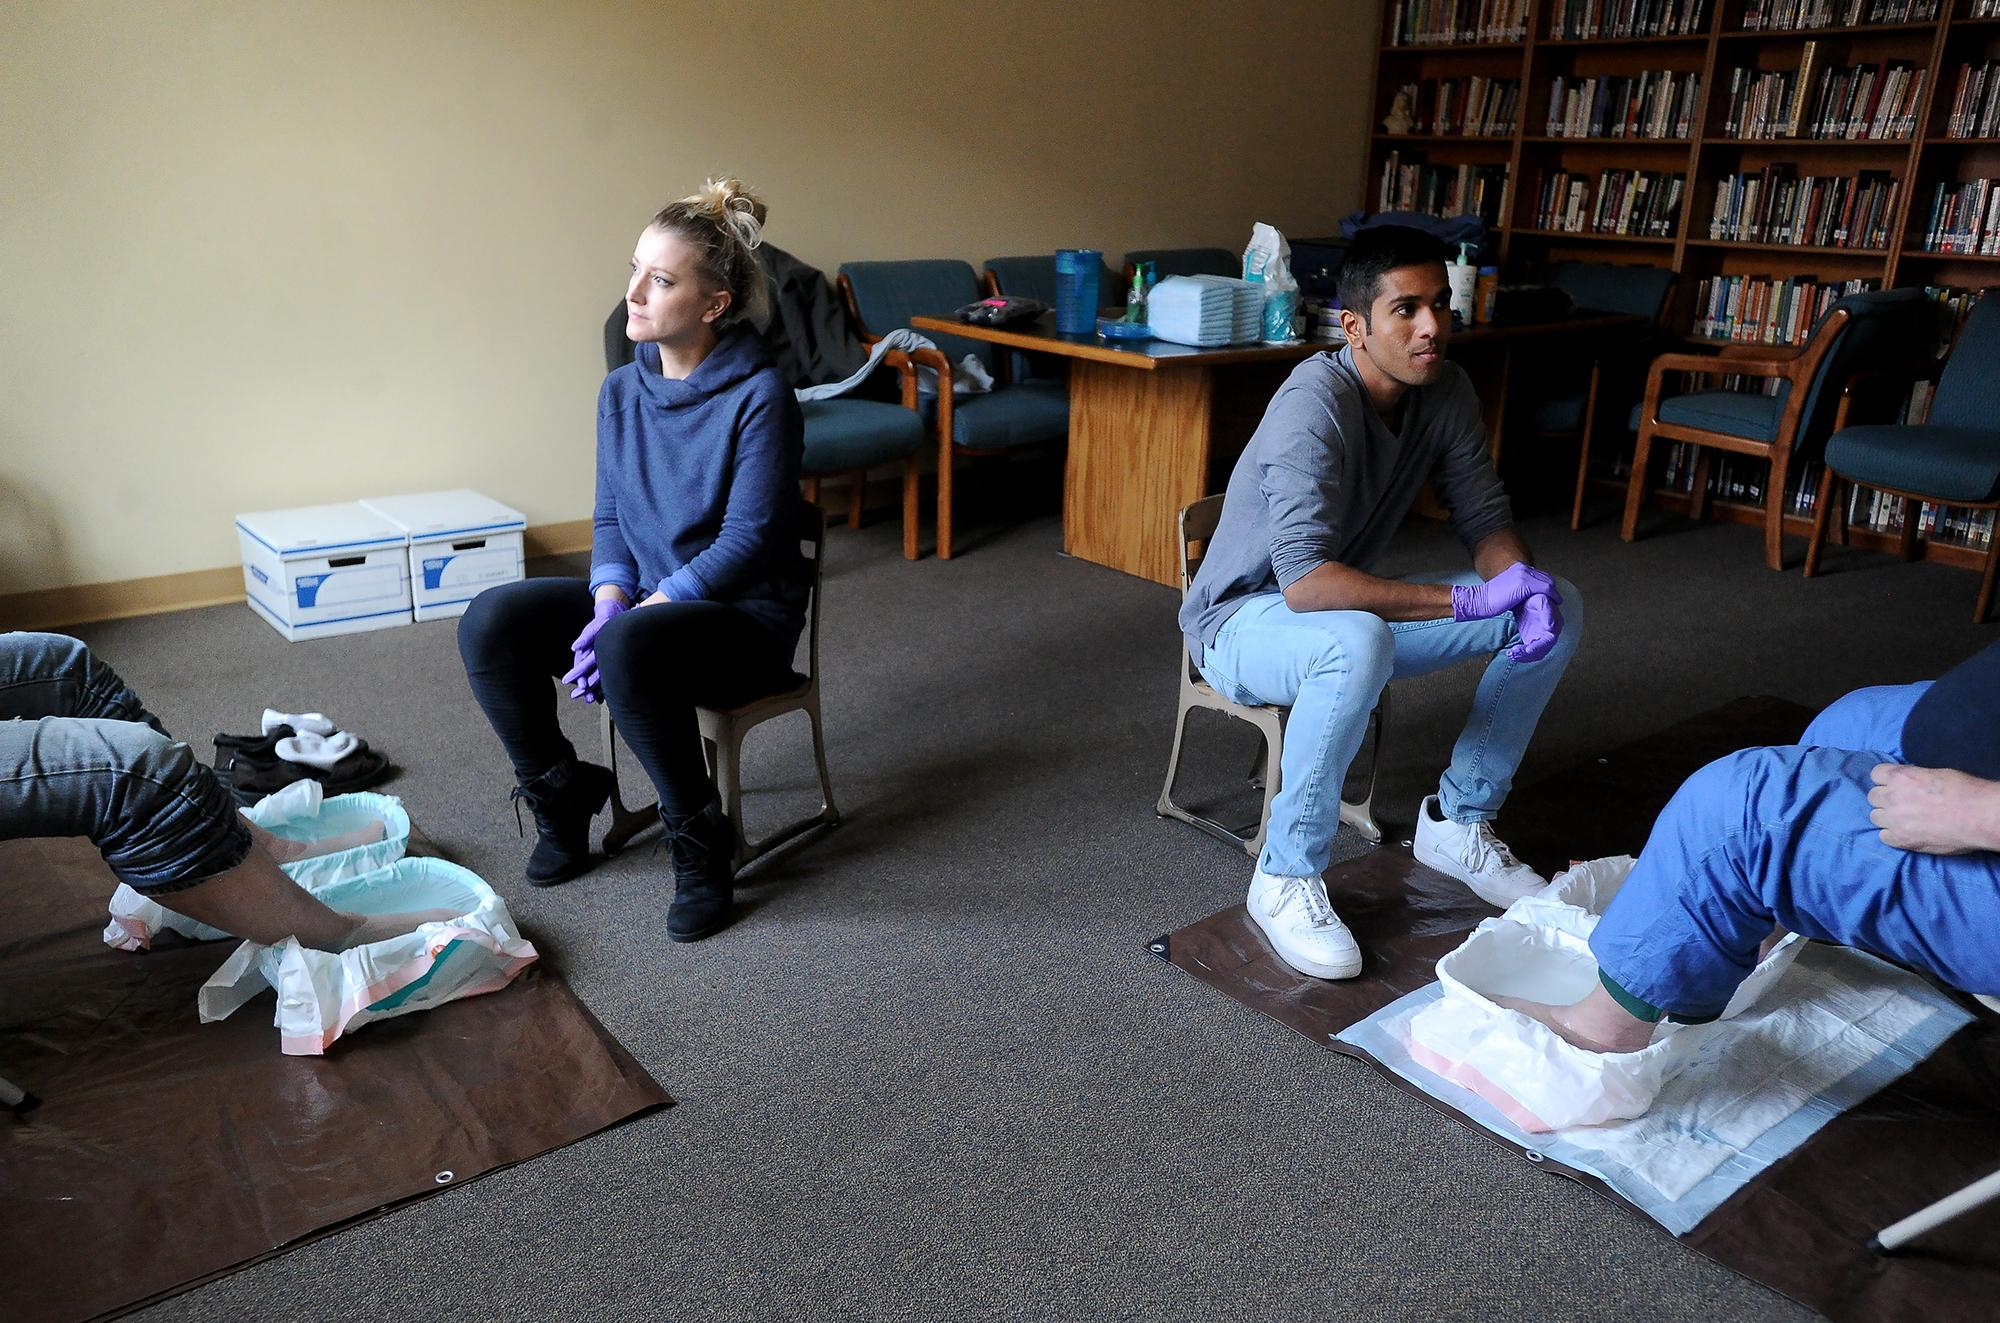 Oregon Health and Sciences University nursing students Ashley Higinbotham and Asish Kumar listen as their homeless clients share stories about their day as their feet are soaked and washed at the First United Methodist Church in Ashland. Photo by Denise Baratta